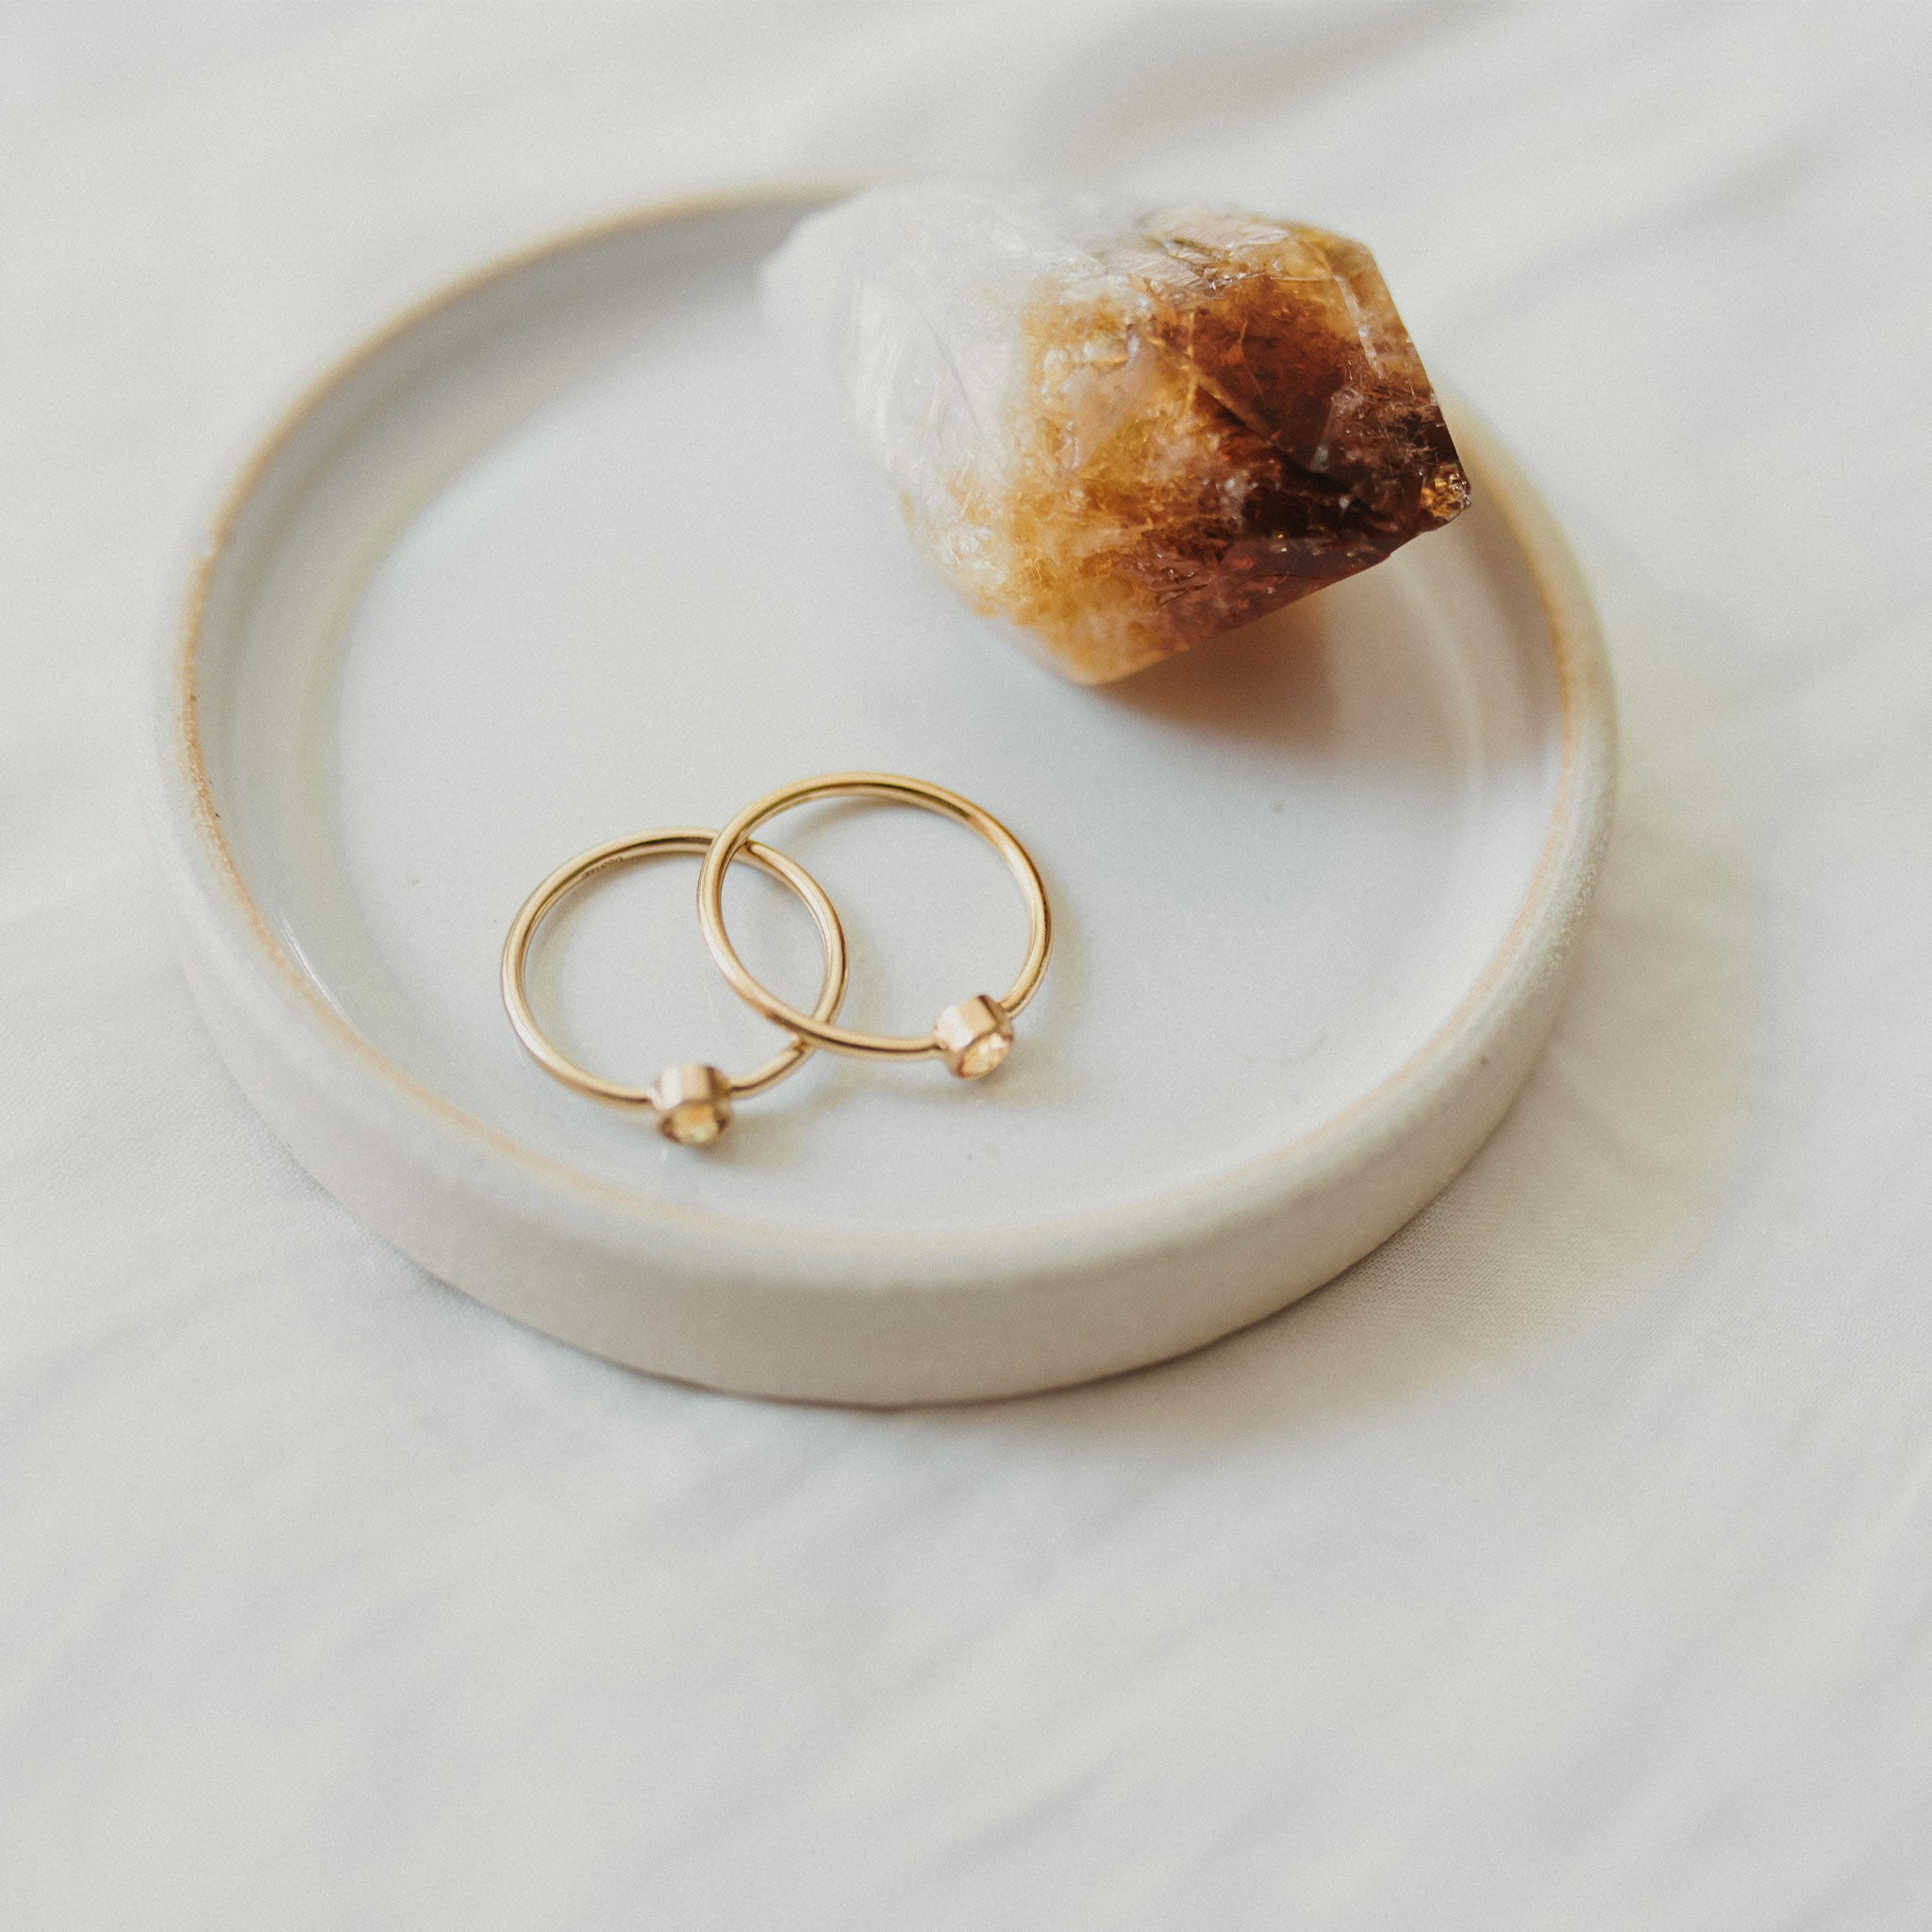 Wanderlust Life 14k gold fill ring featuring semi precious citrine gemstone. Available in various ring sizes. Wanderlust Life jewellery handmade in Devon, UK.